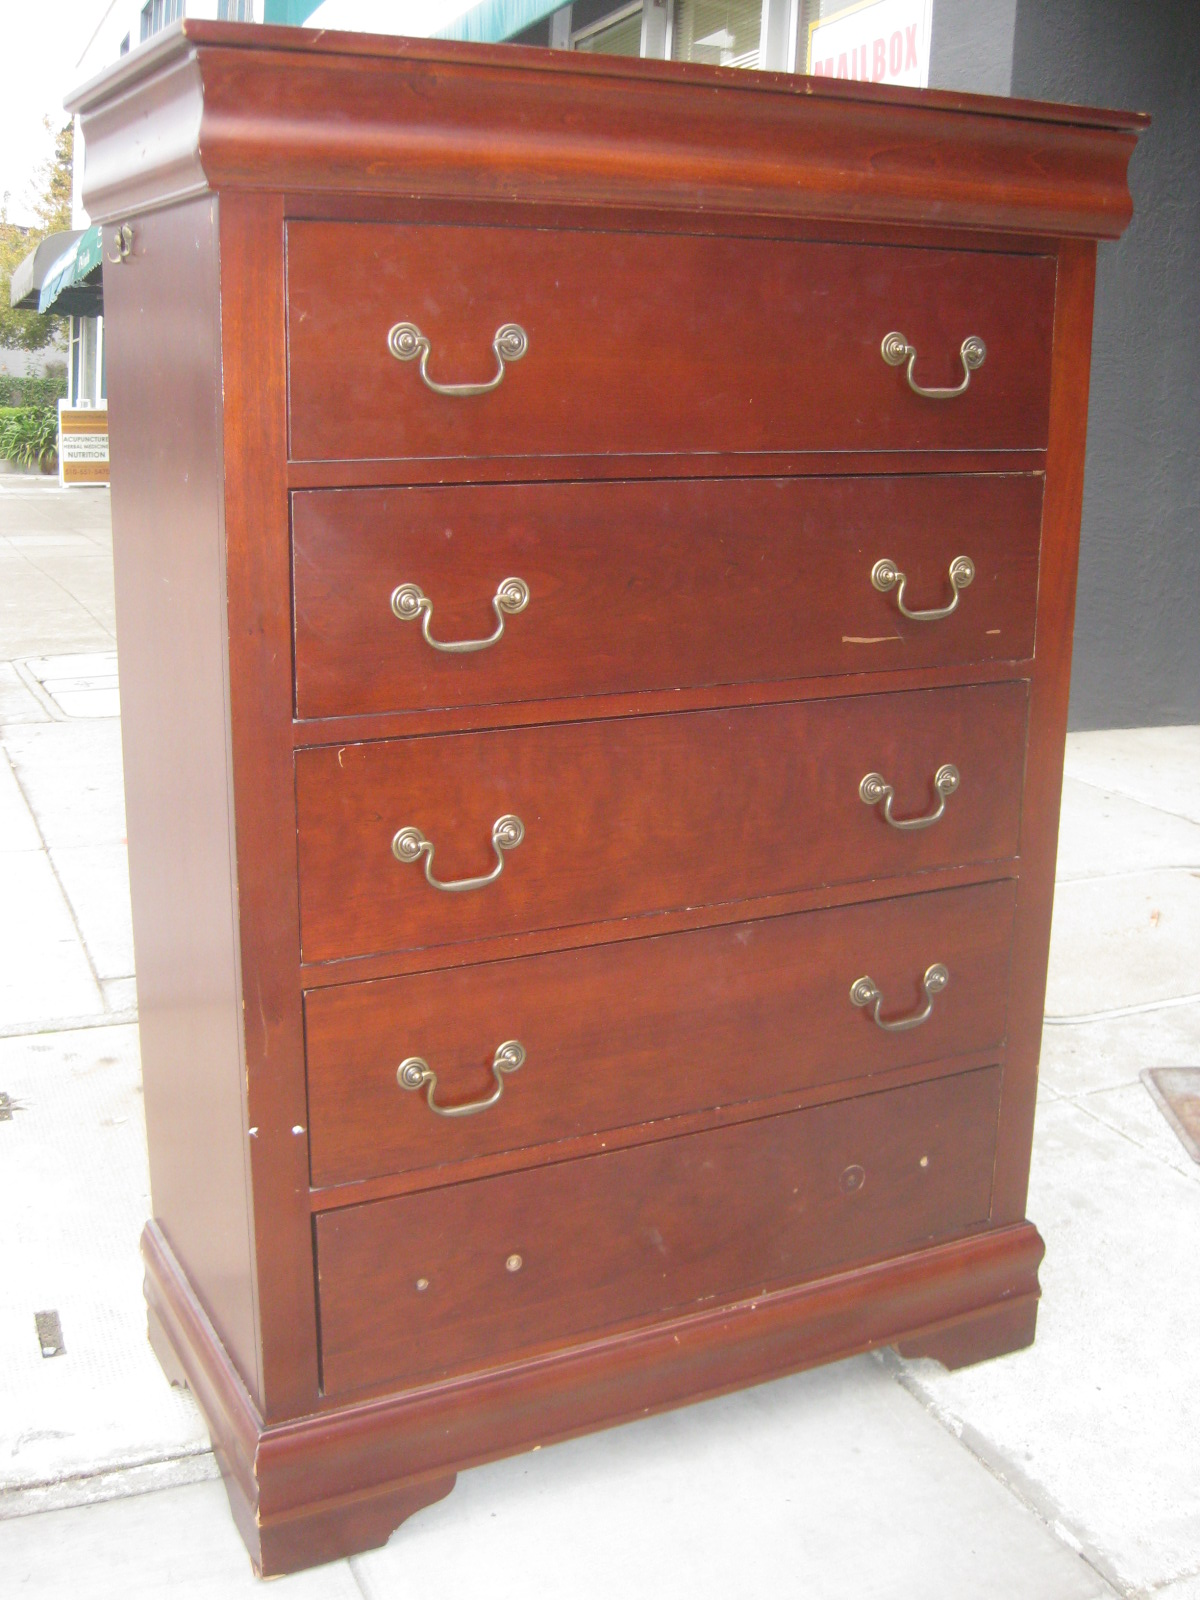 uhuru furniture collectibles sold chest of drawers with jewelry drawer 85. Black Bedroom Furniture Sets. Home Design Ideas